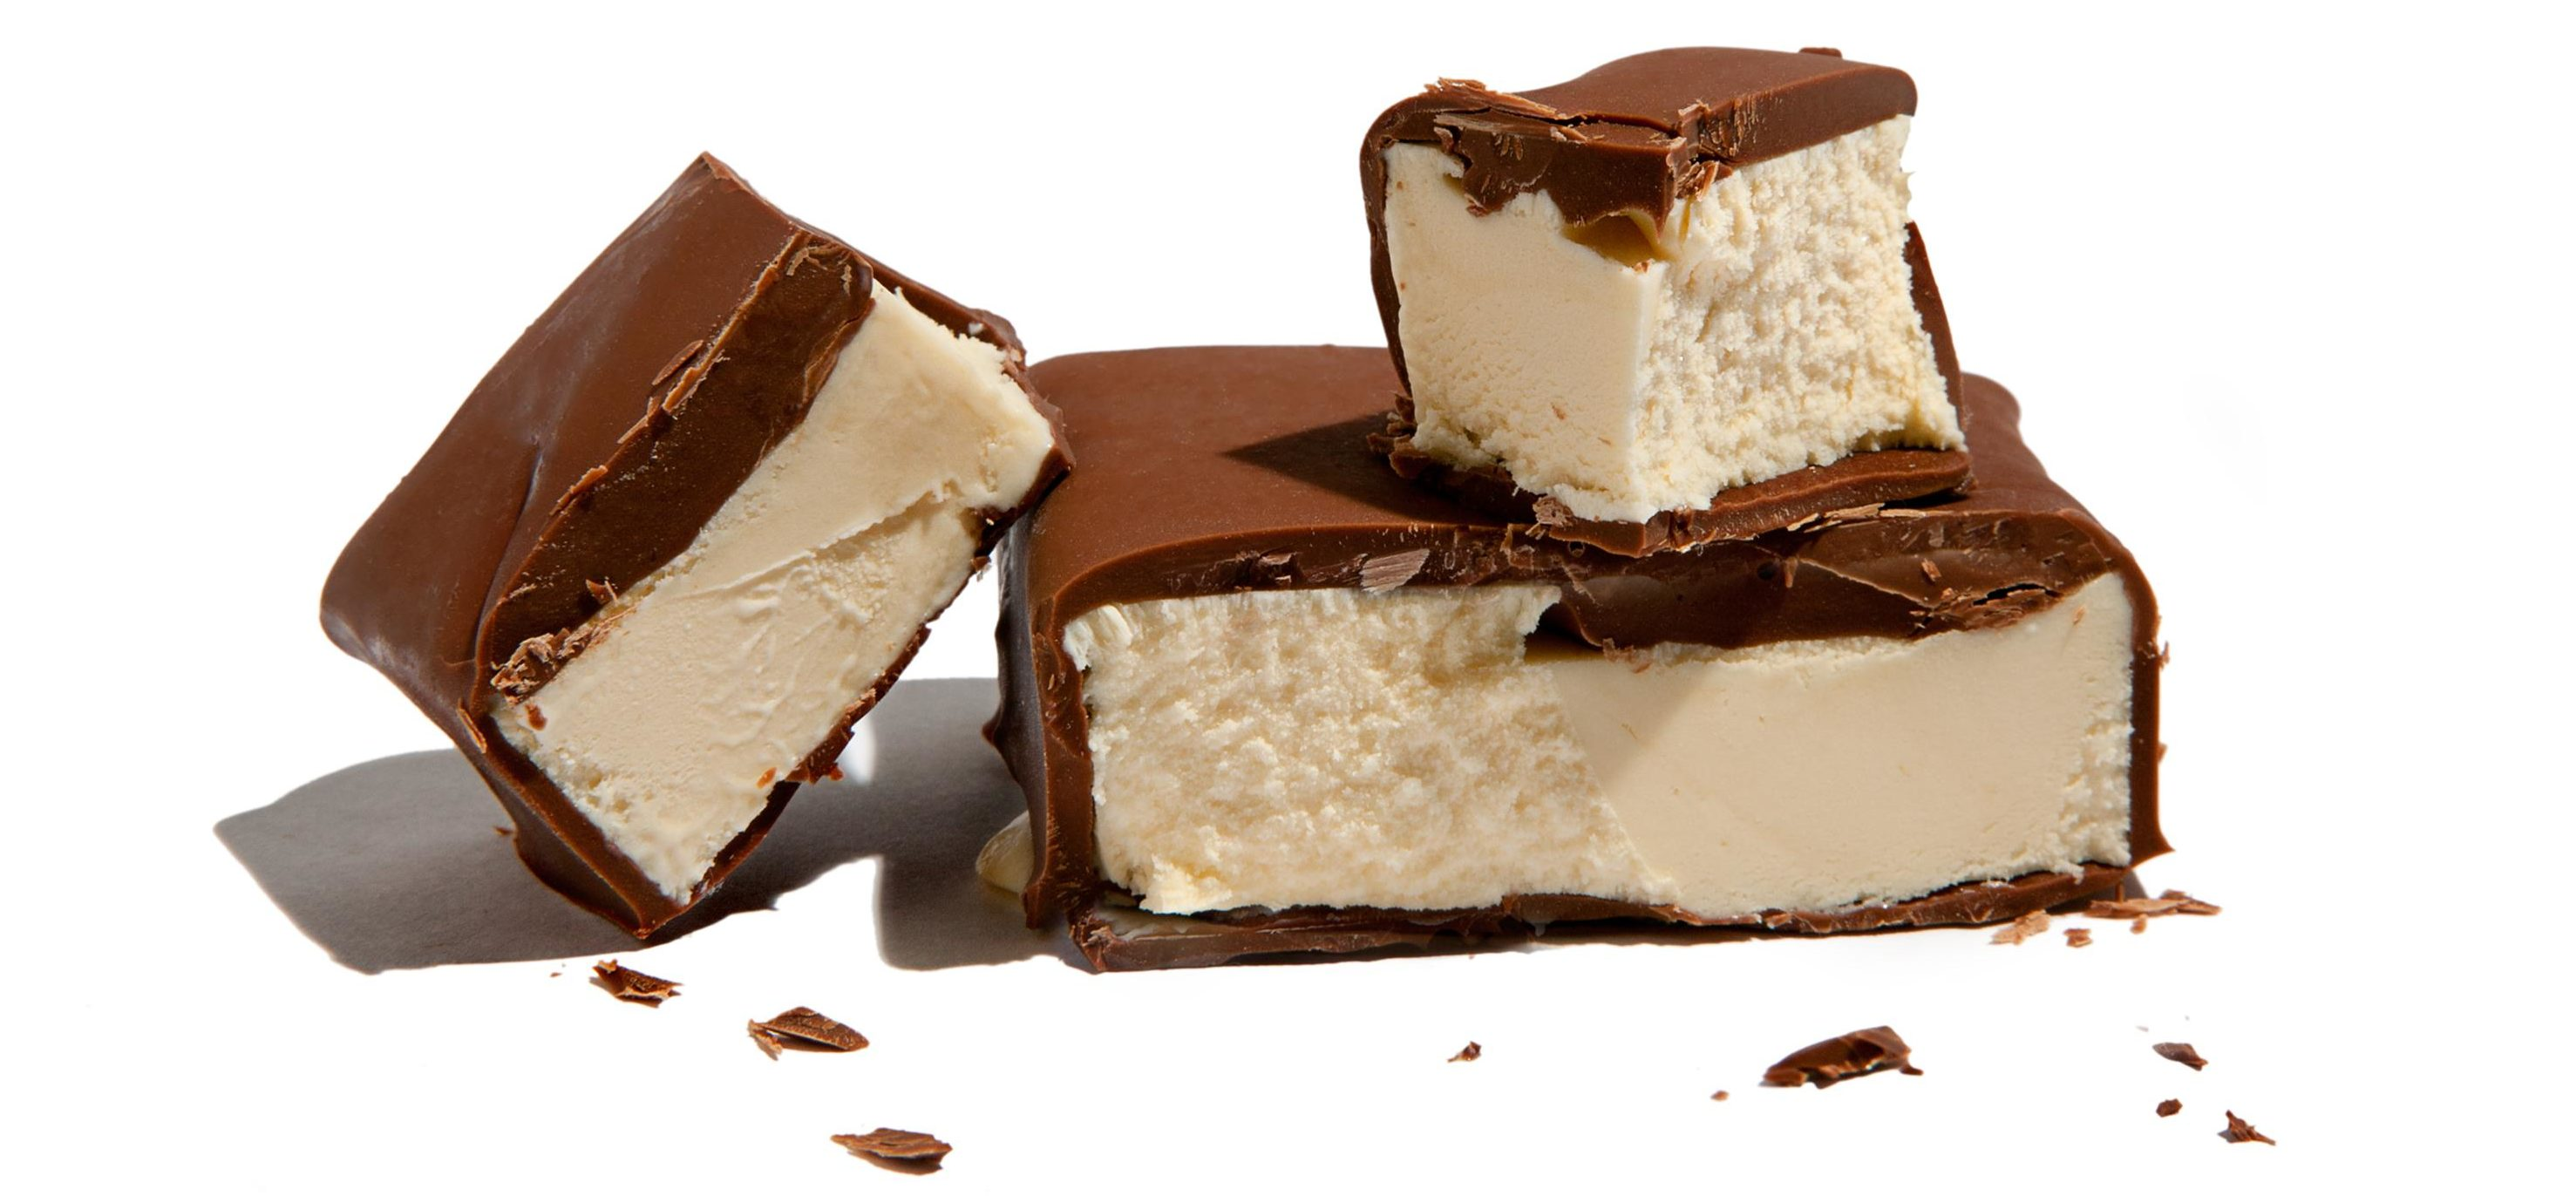 Ice cream bars recalled